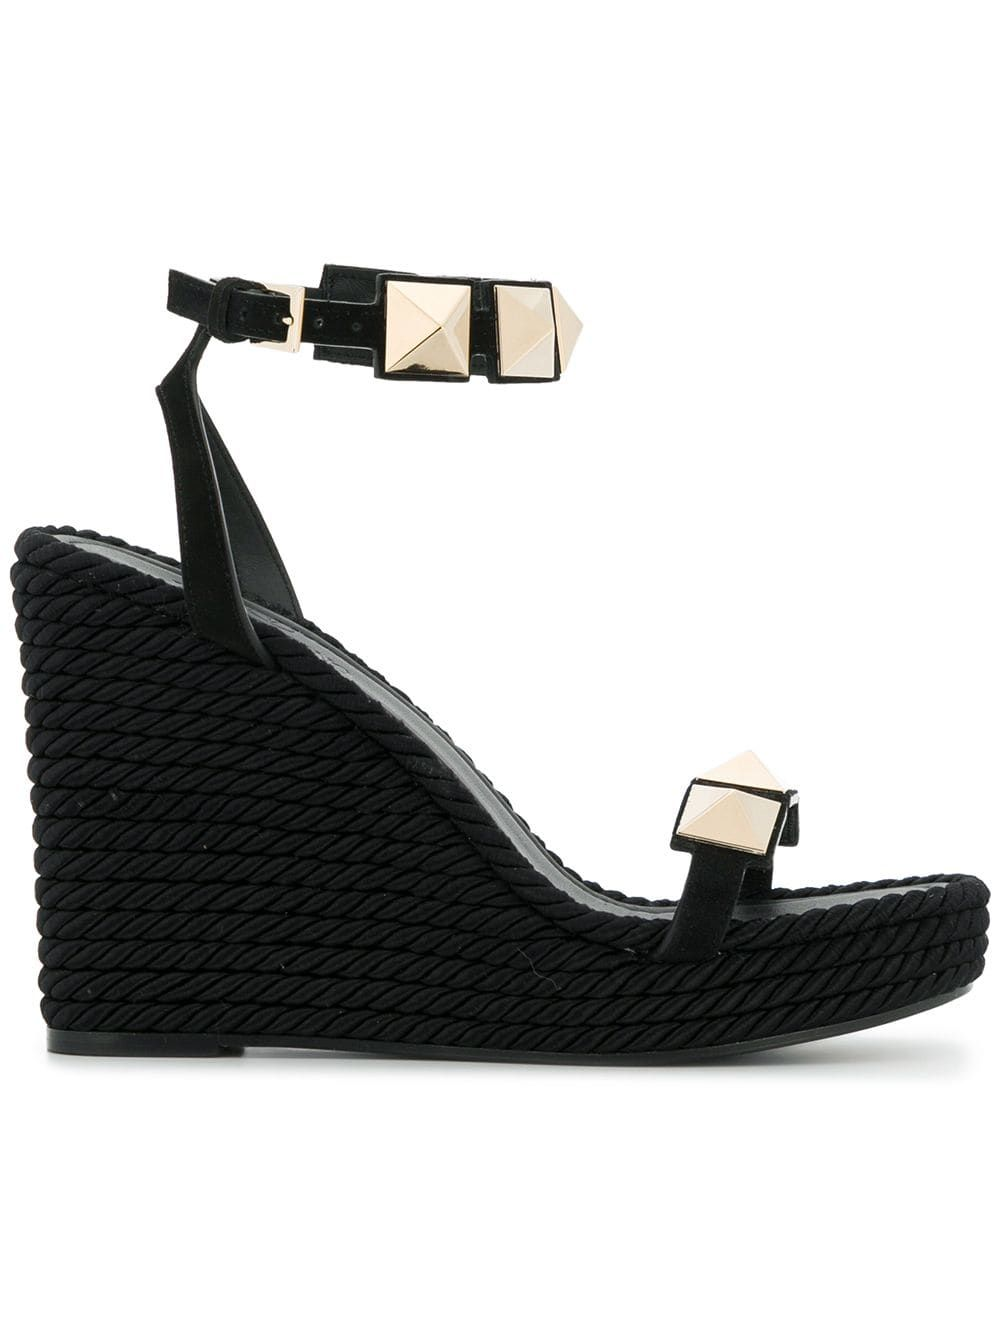 6c250640510 Valentino wedge stud sandals - Black | Products in 2019 | Valentino ...